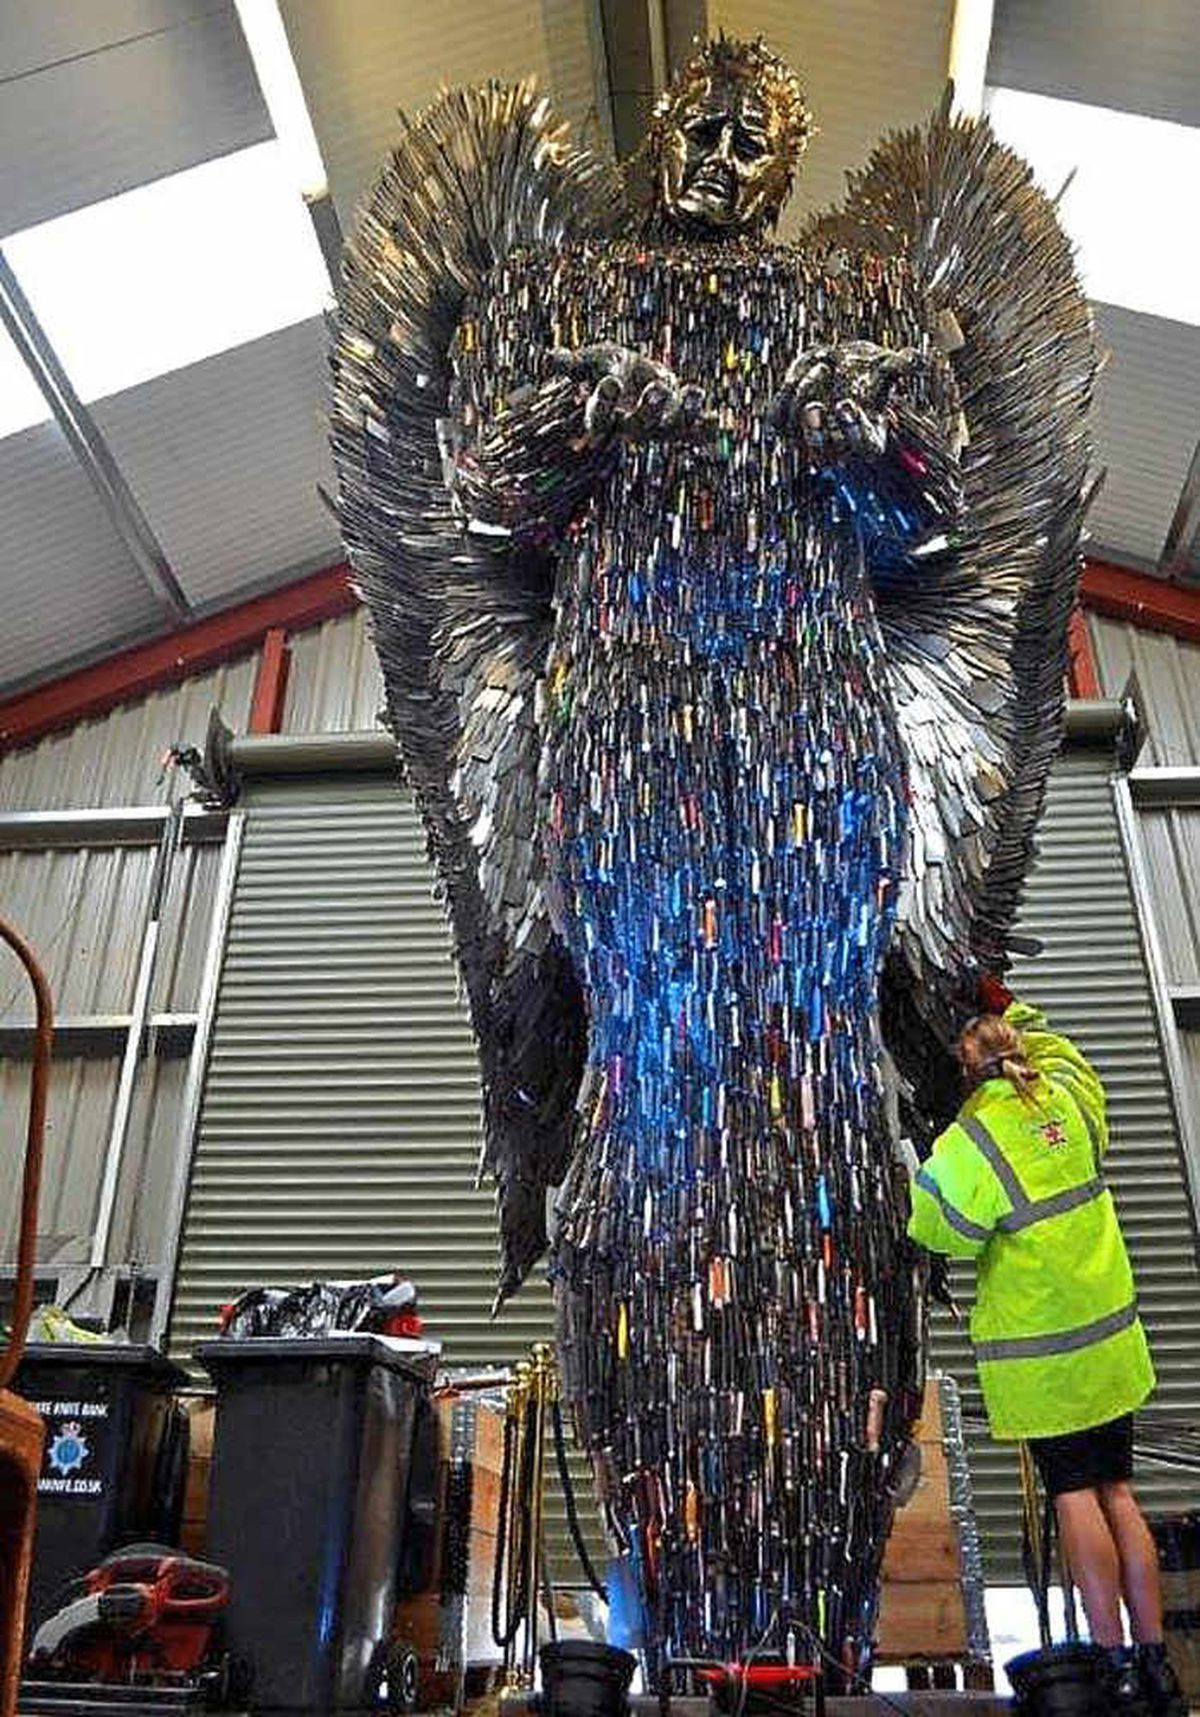 The Shropshire Knife Angel is made from about 100,000 knives